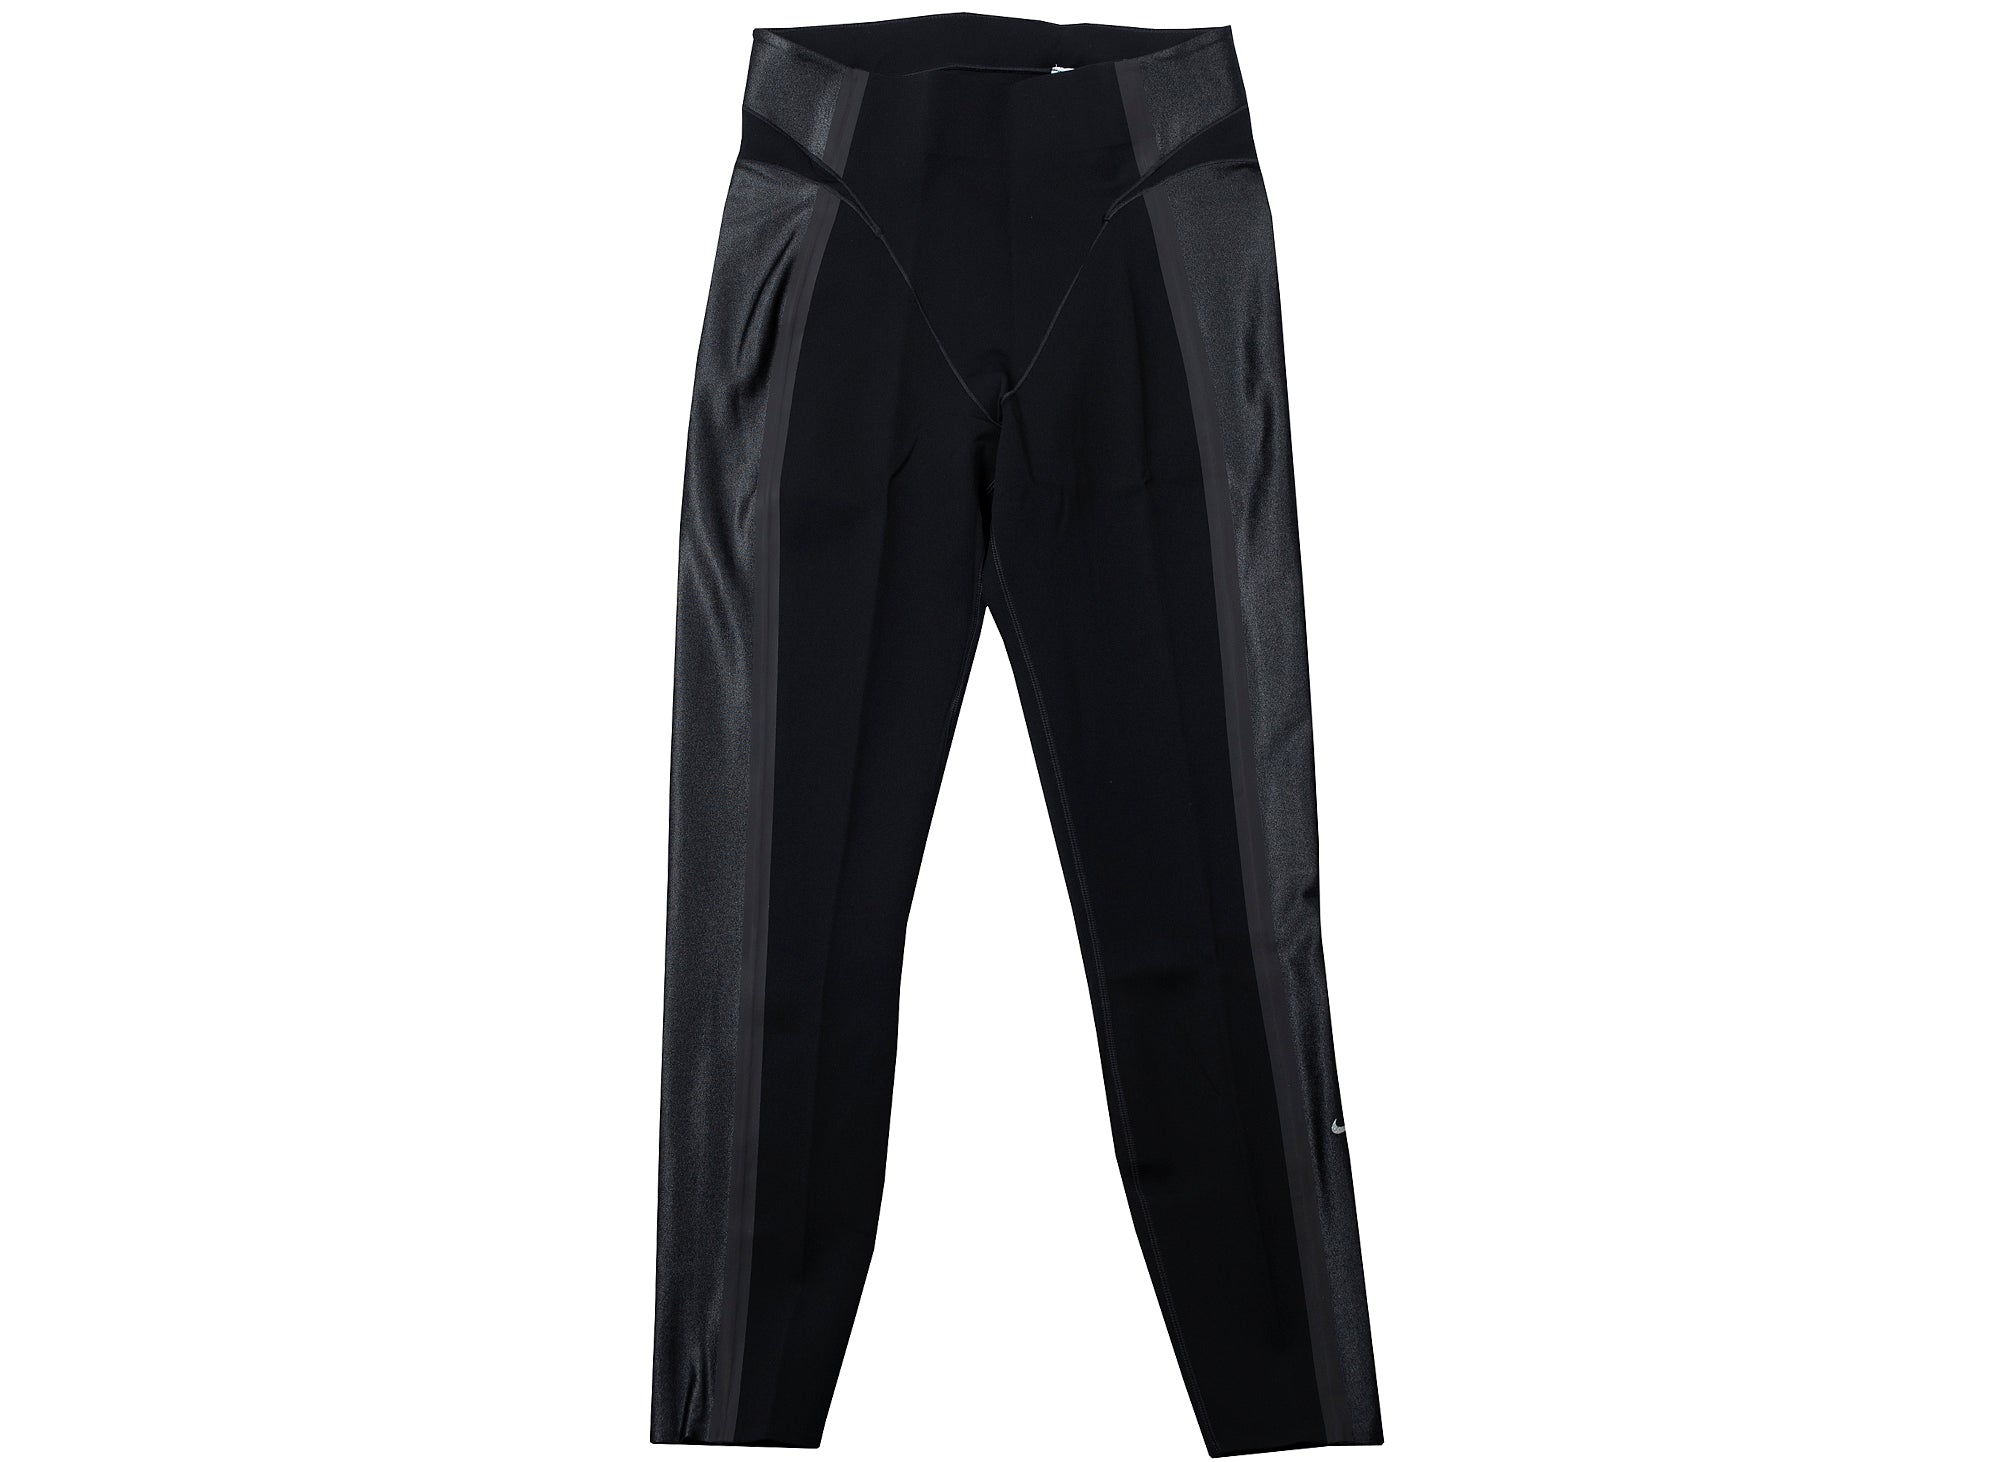 Women's Nike BTQ Layered Tights